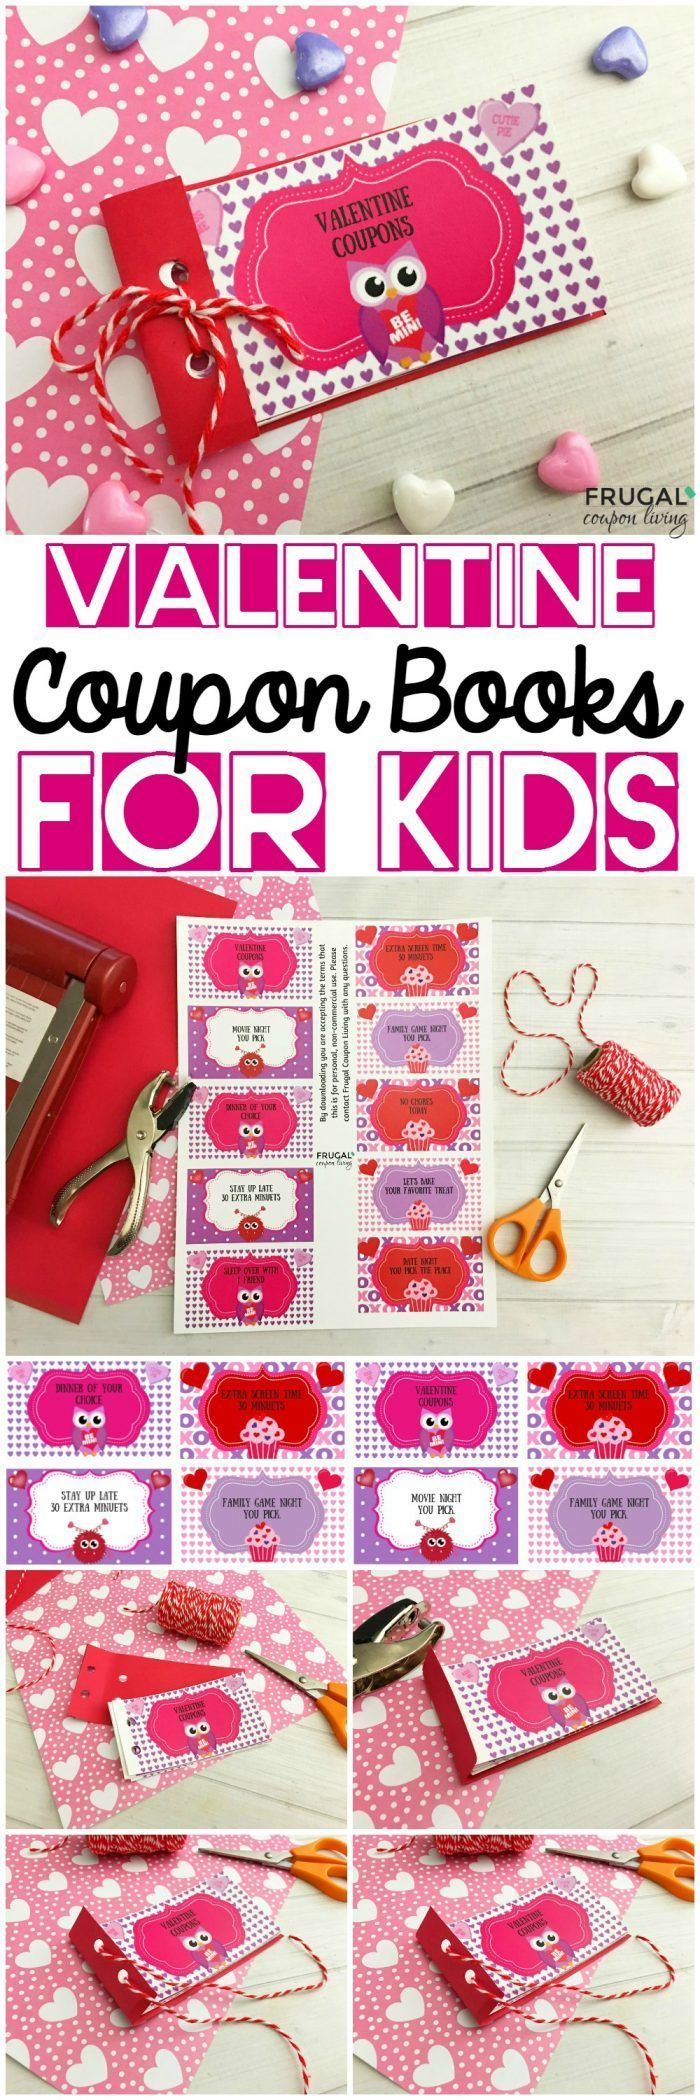 best ideas about coupon books mother s day kid and teen valentine coupon books